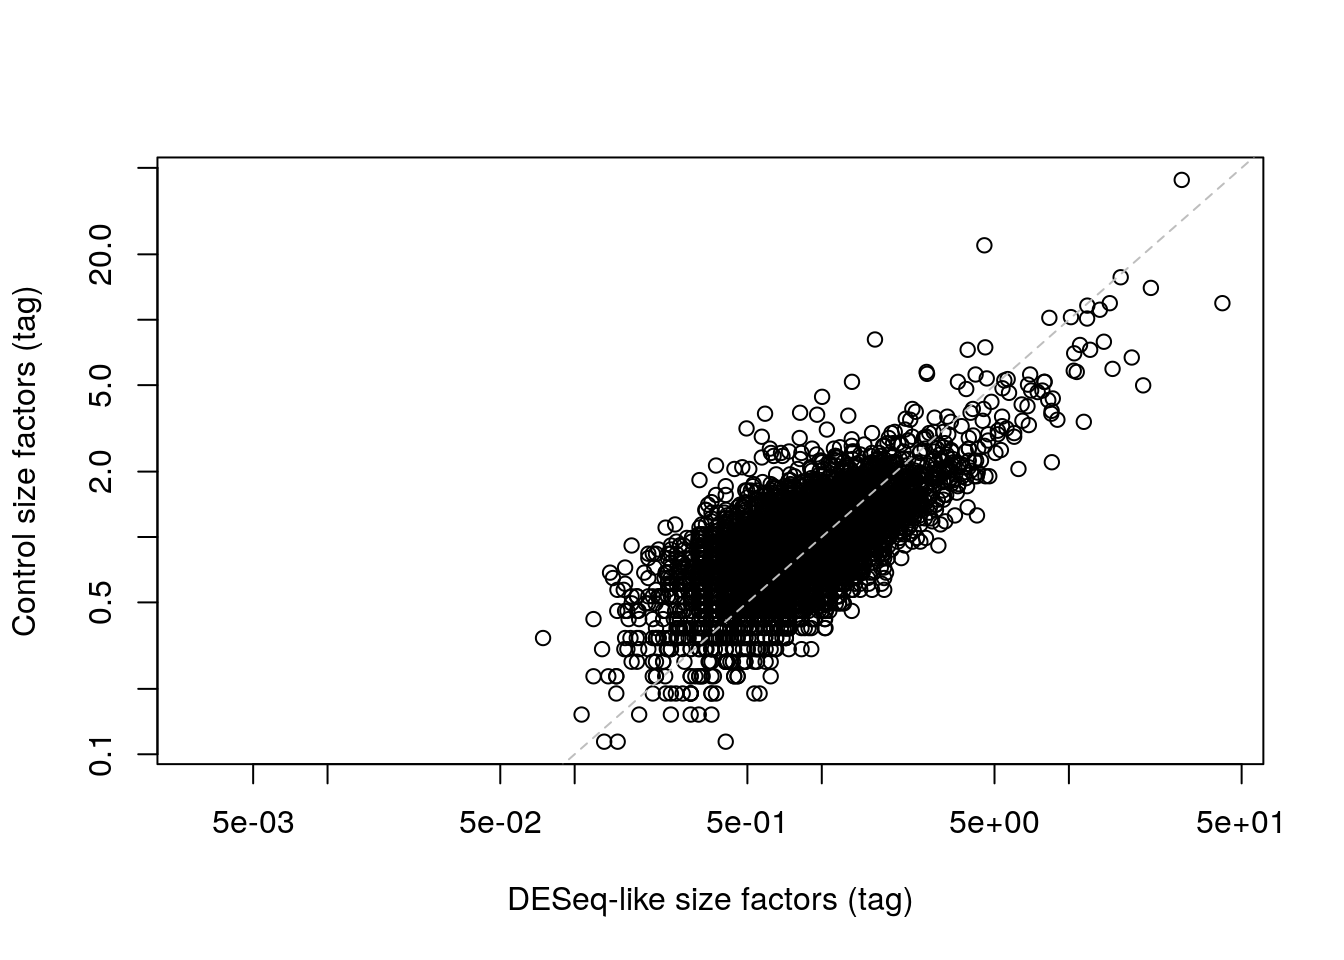 IgG control-derived size factors for each cell in the PBMC dataset, compared to the DESeq-like size factors.